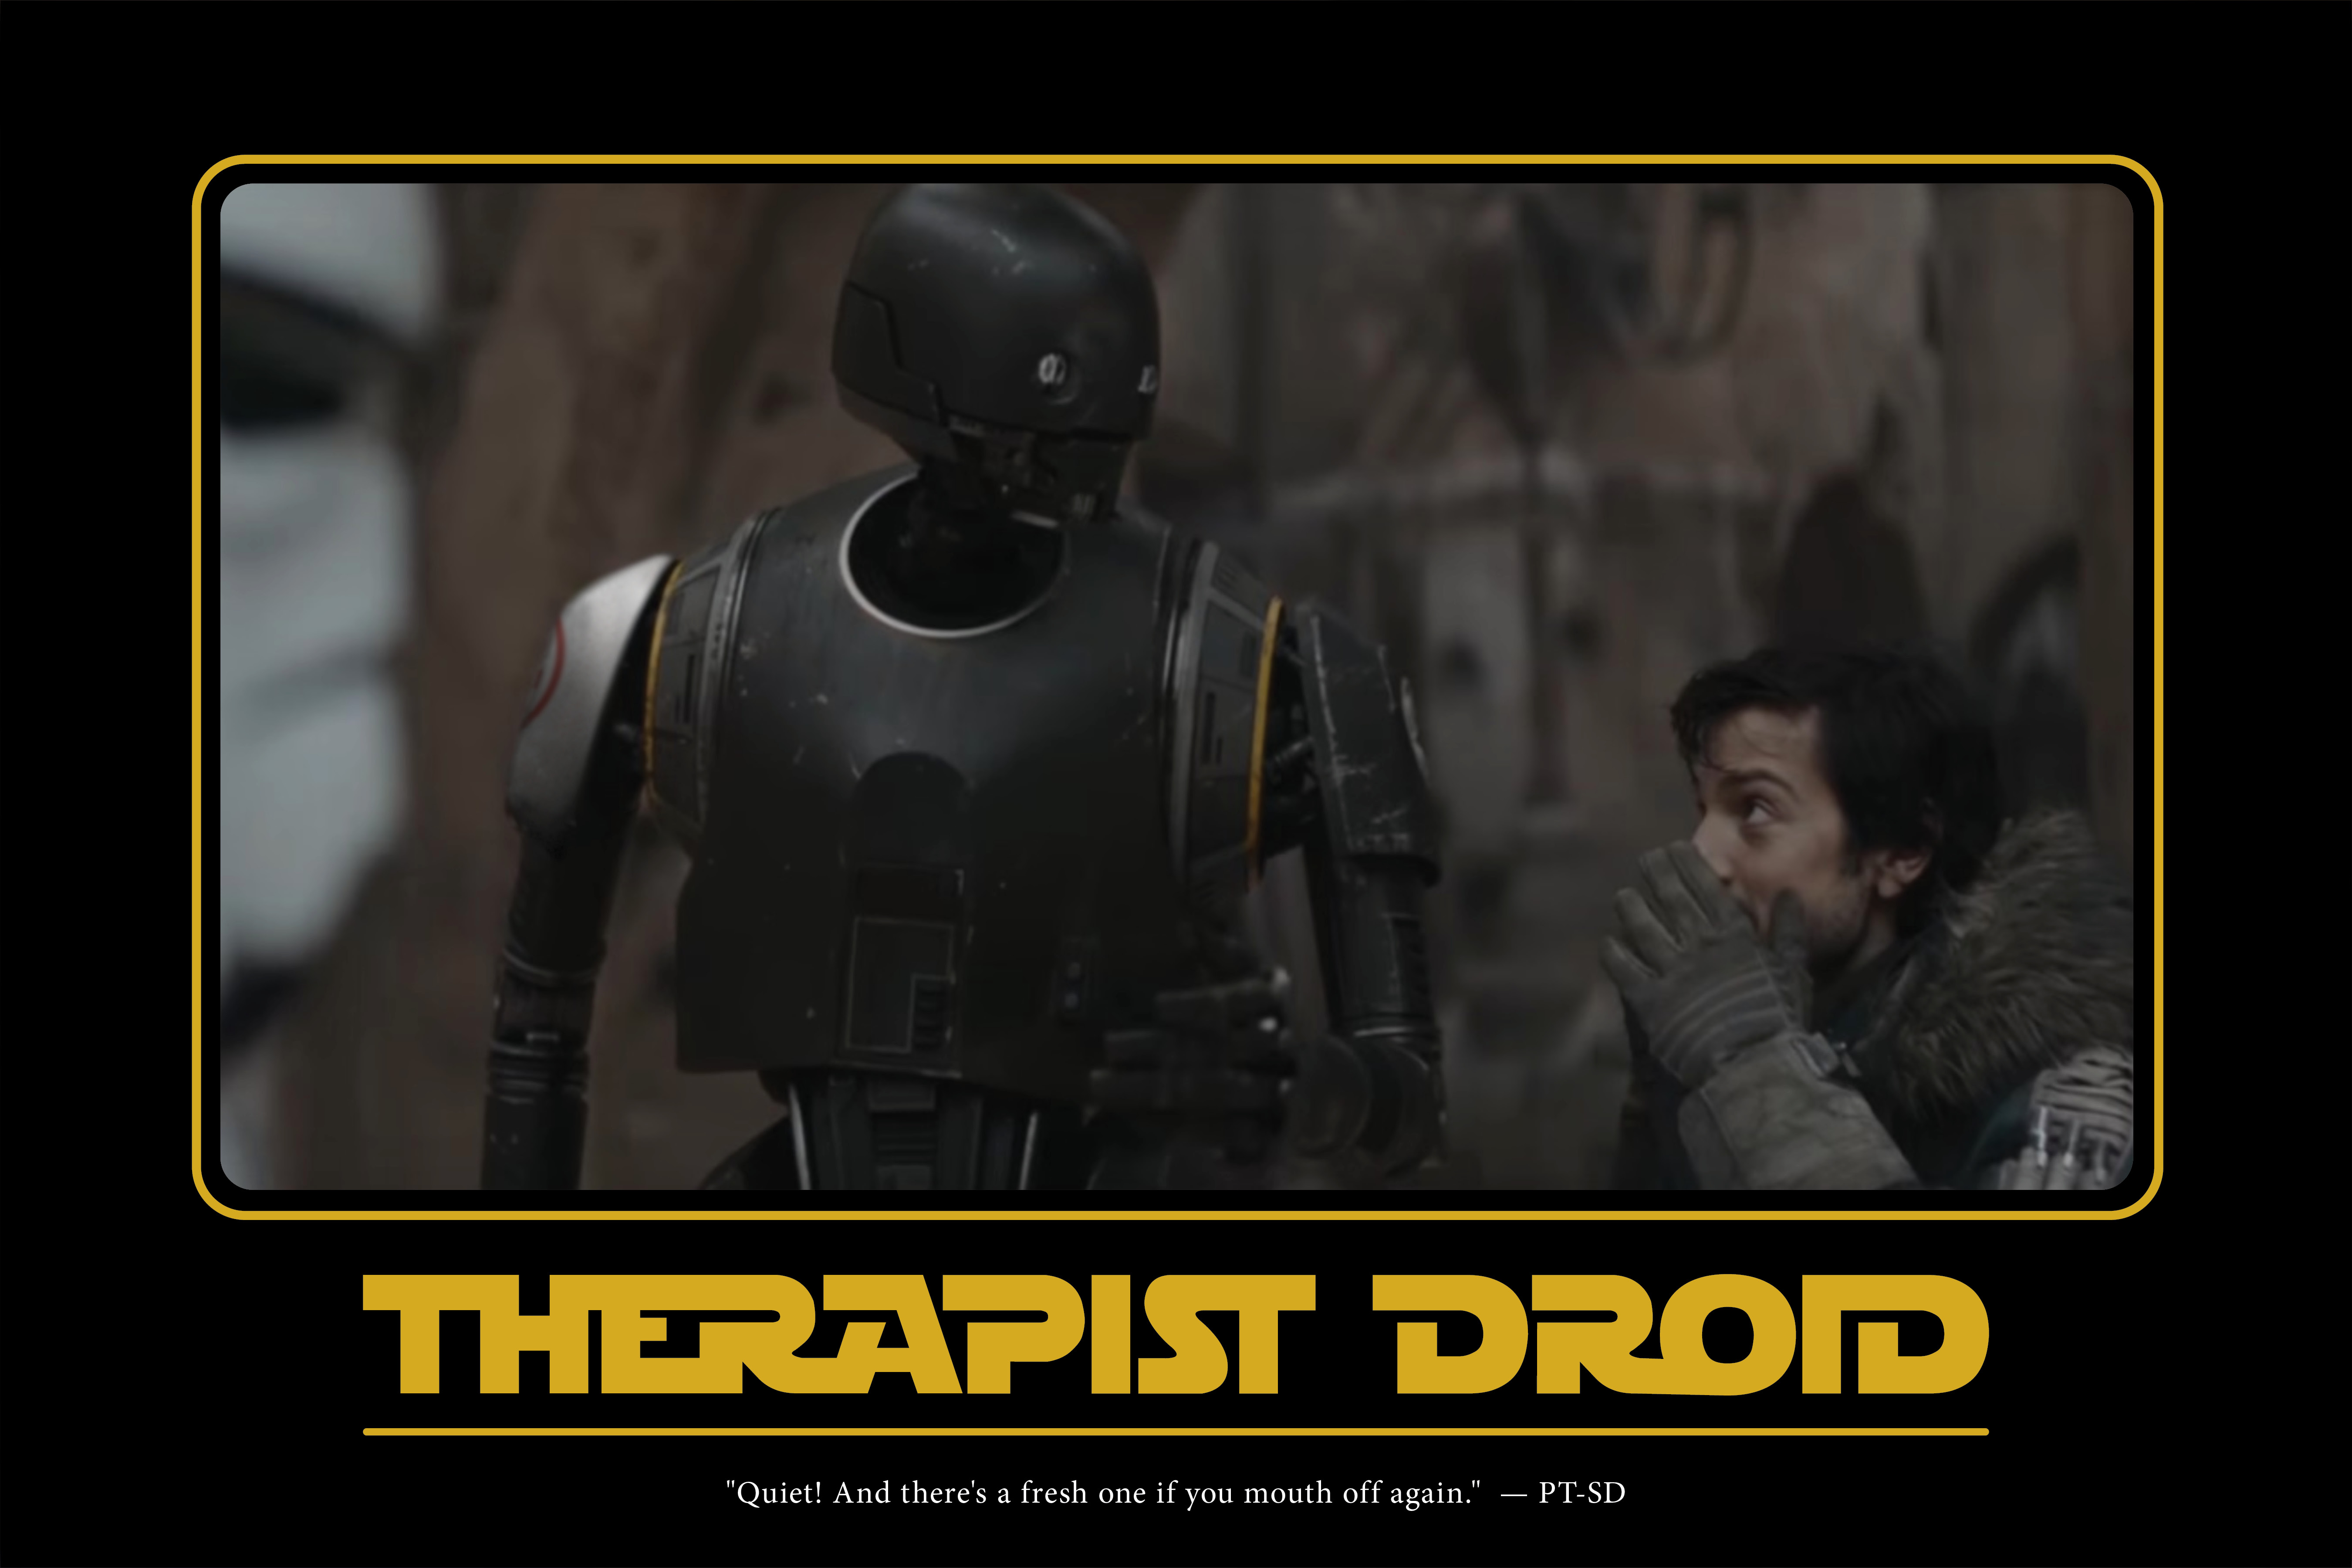 PT-SD assists in another fine therapy session.